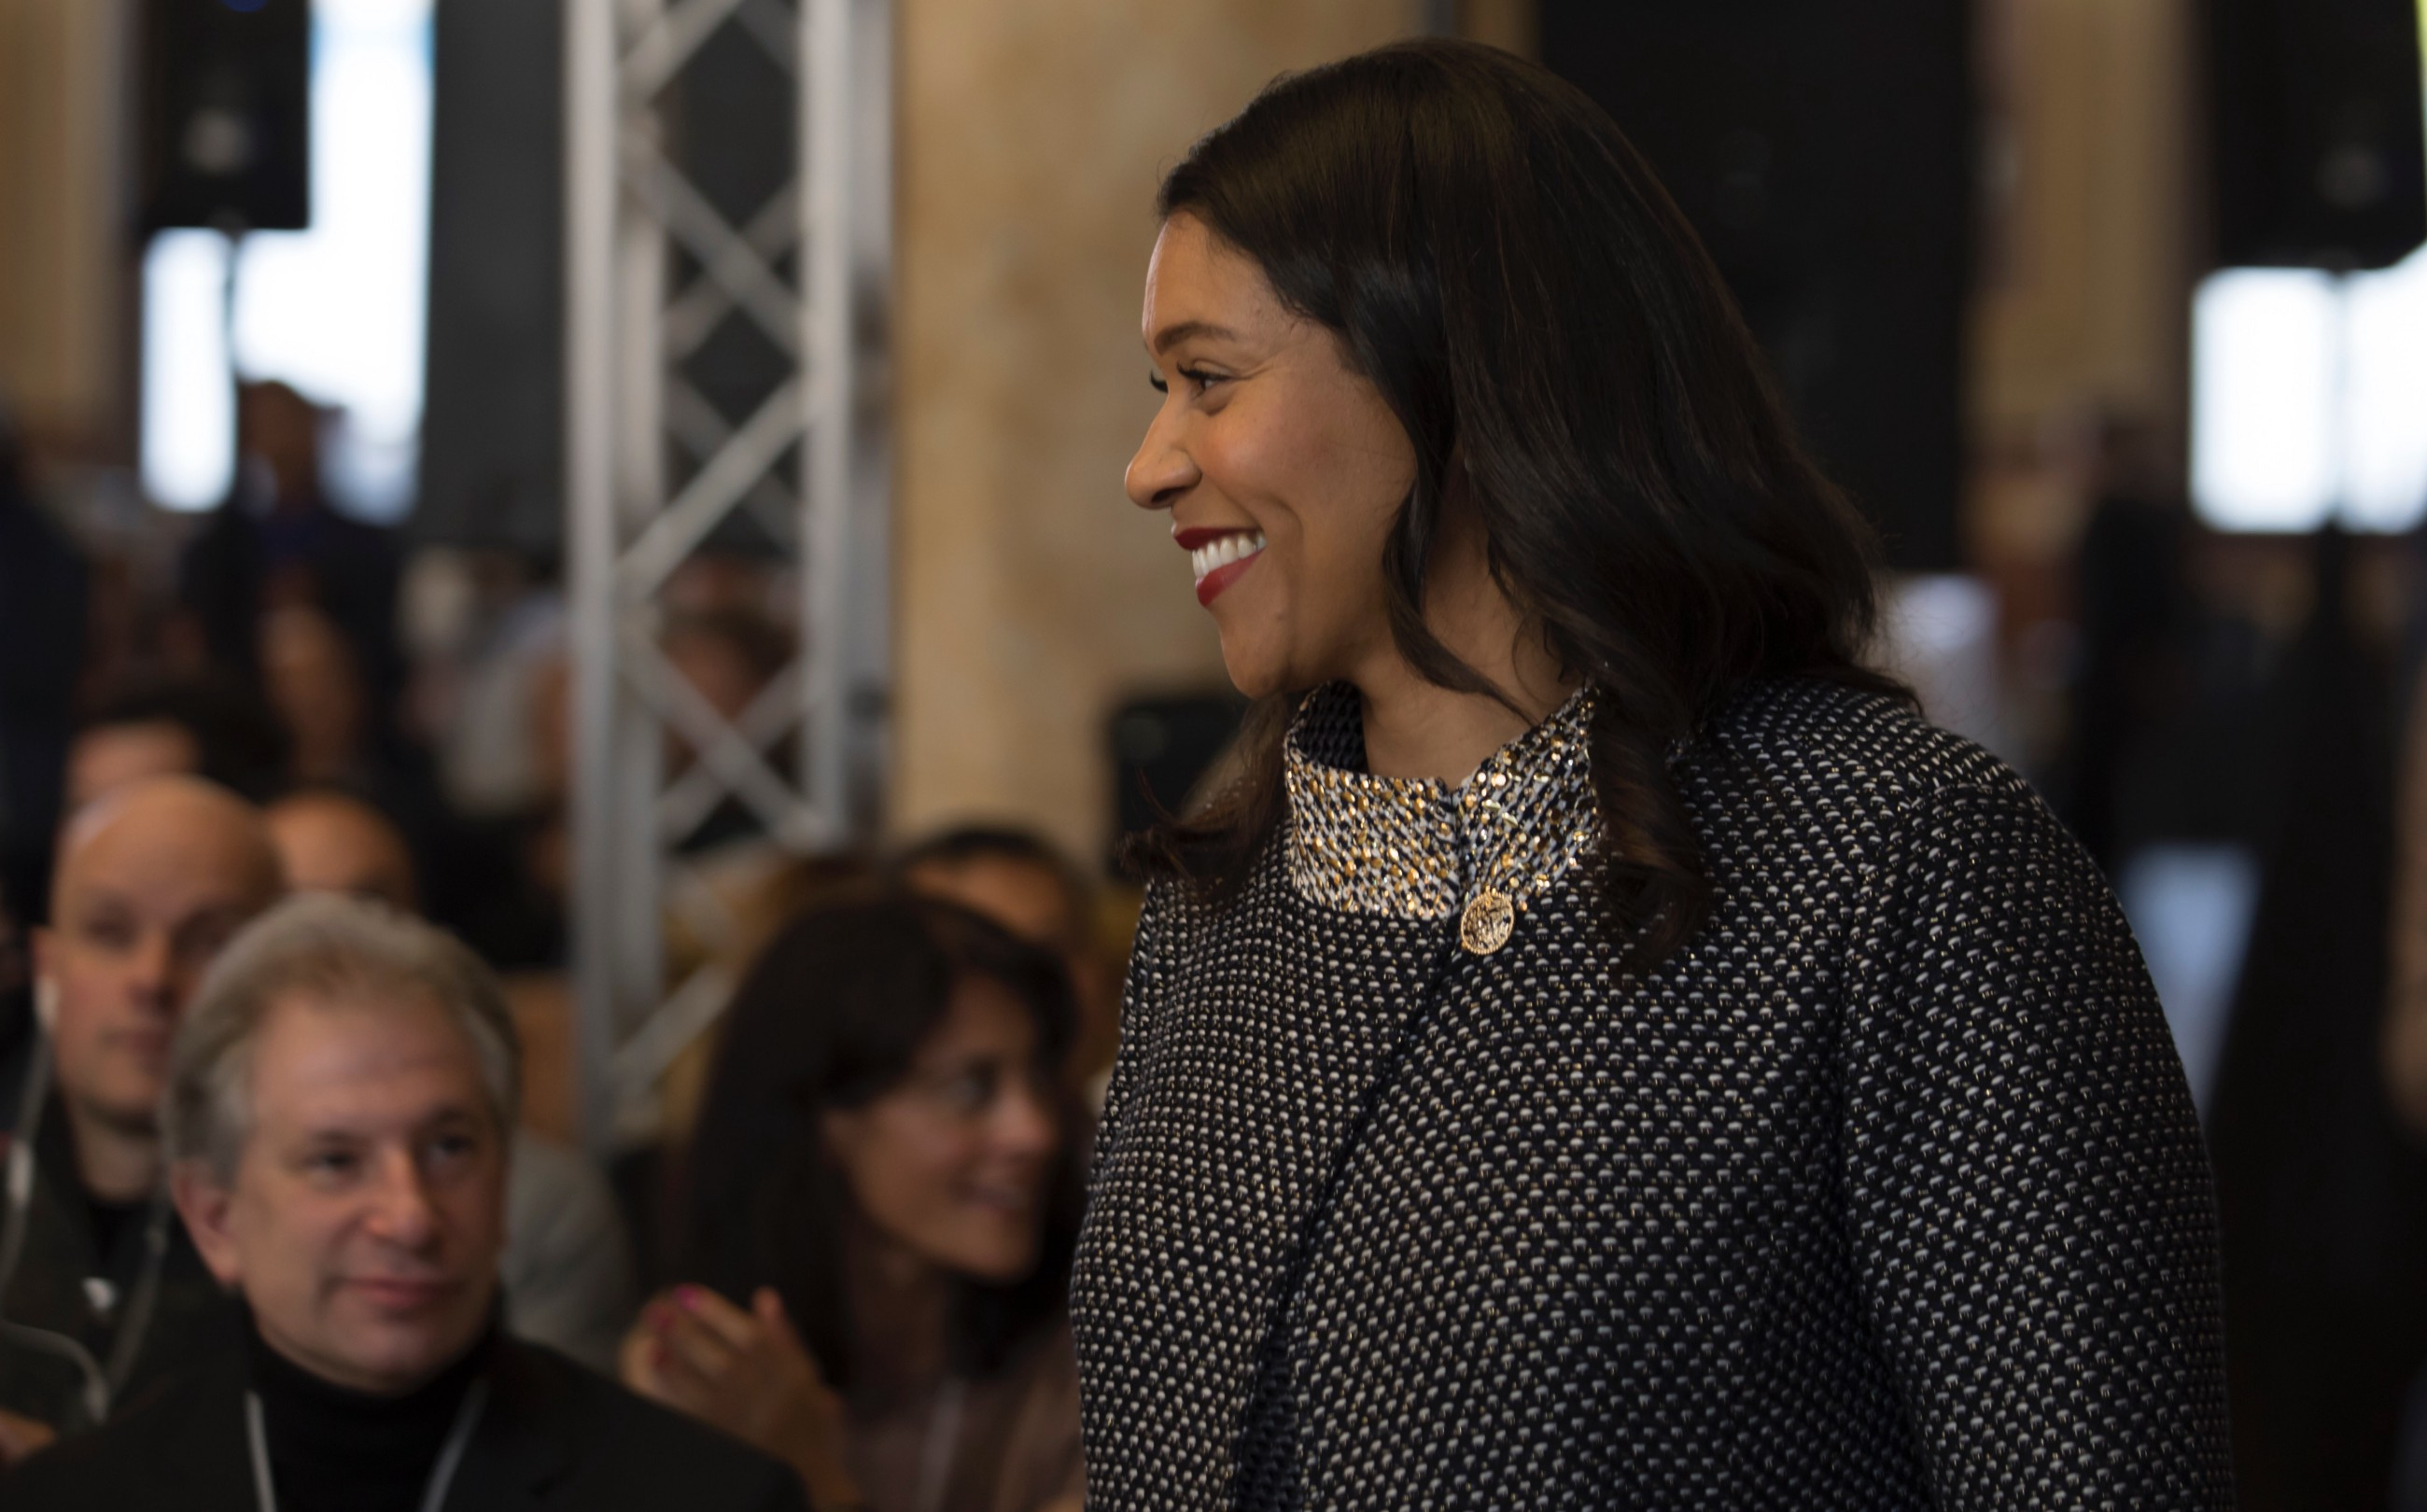 London Breed Keeps Banging the Drum on Housing